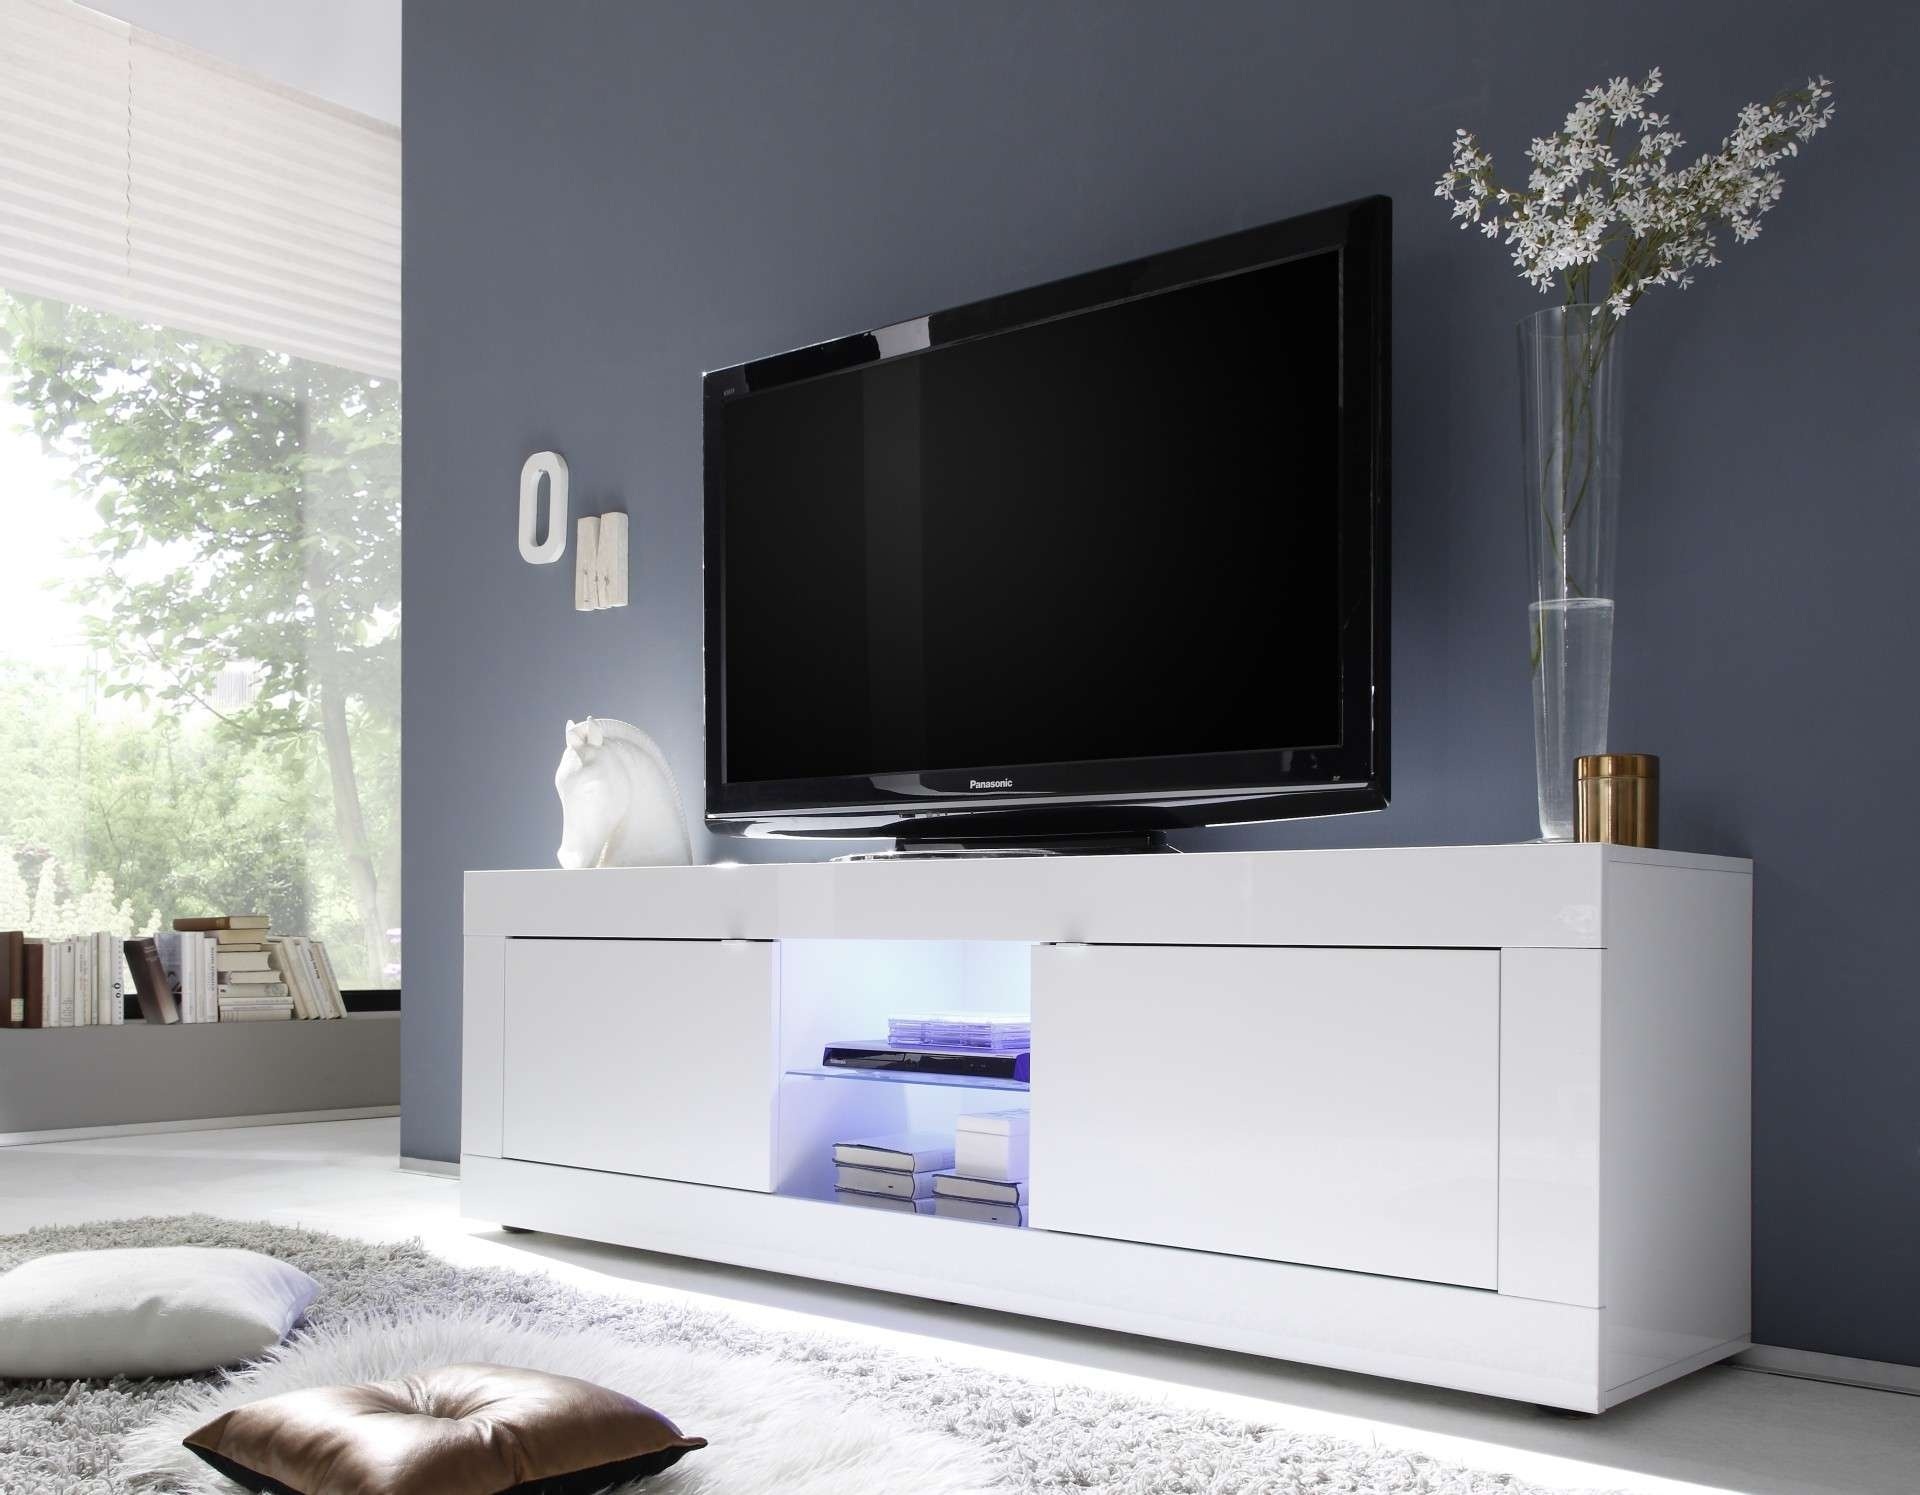 Cream Gloss Tv Cabinet | Centerfordemocracy Intended For Red Gloss Tv Stands (View 7 of 15)